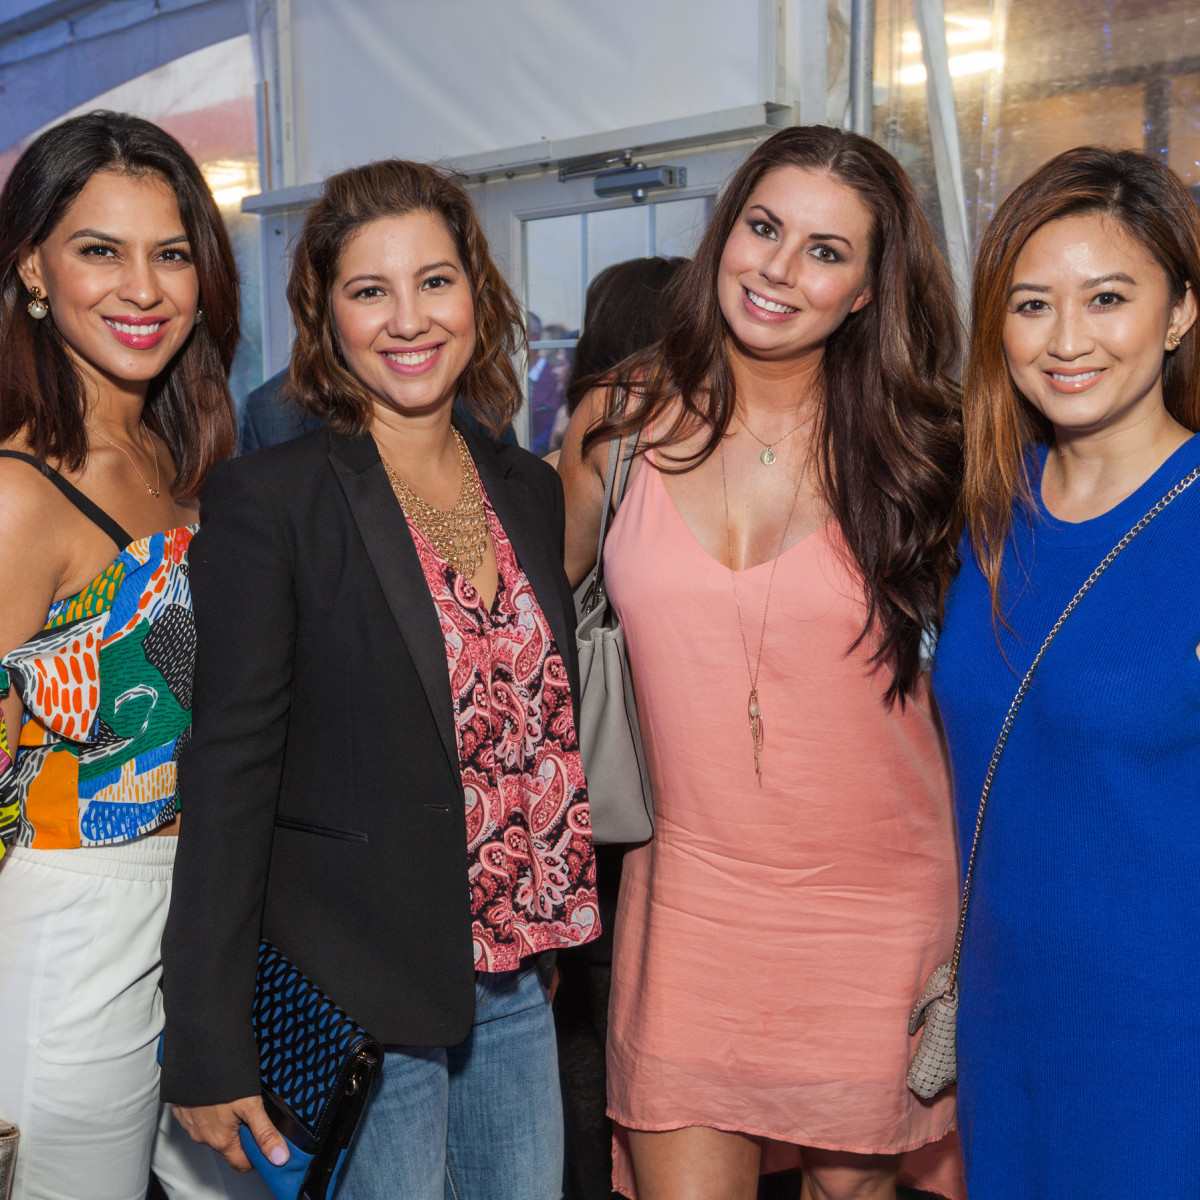 ThrIVe Drip Spa Cindy Pham, Johanna Terry, Savanna Gray, Jeannie Tram